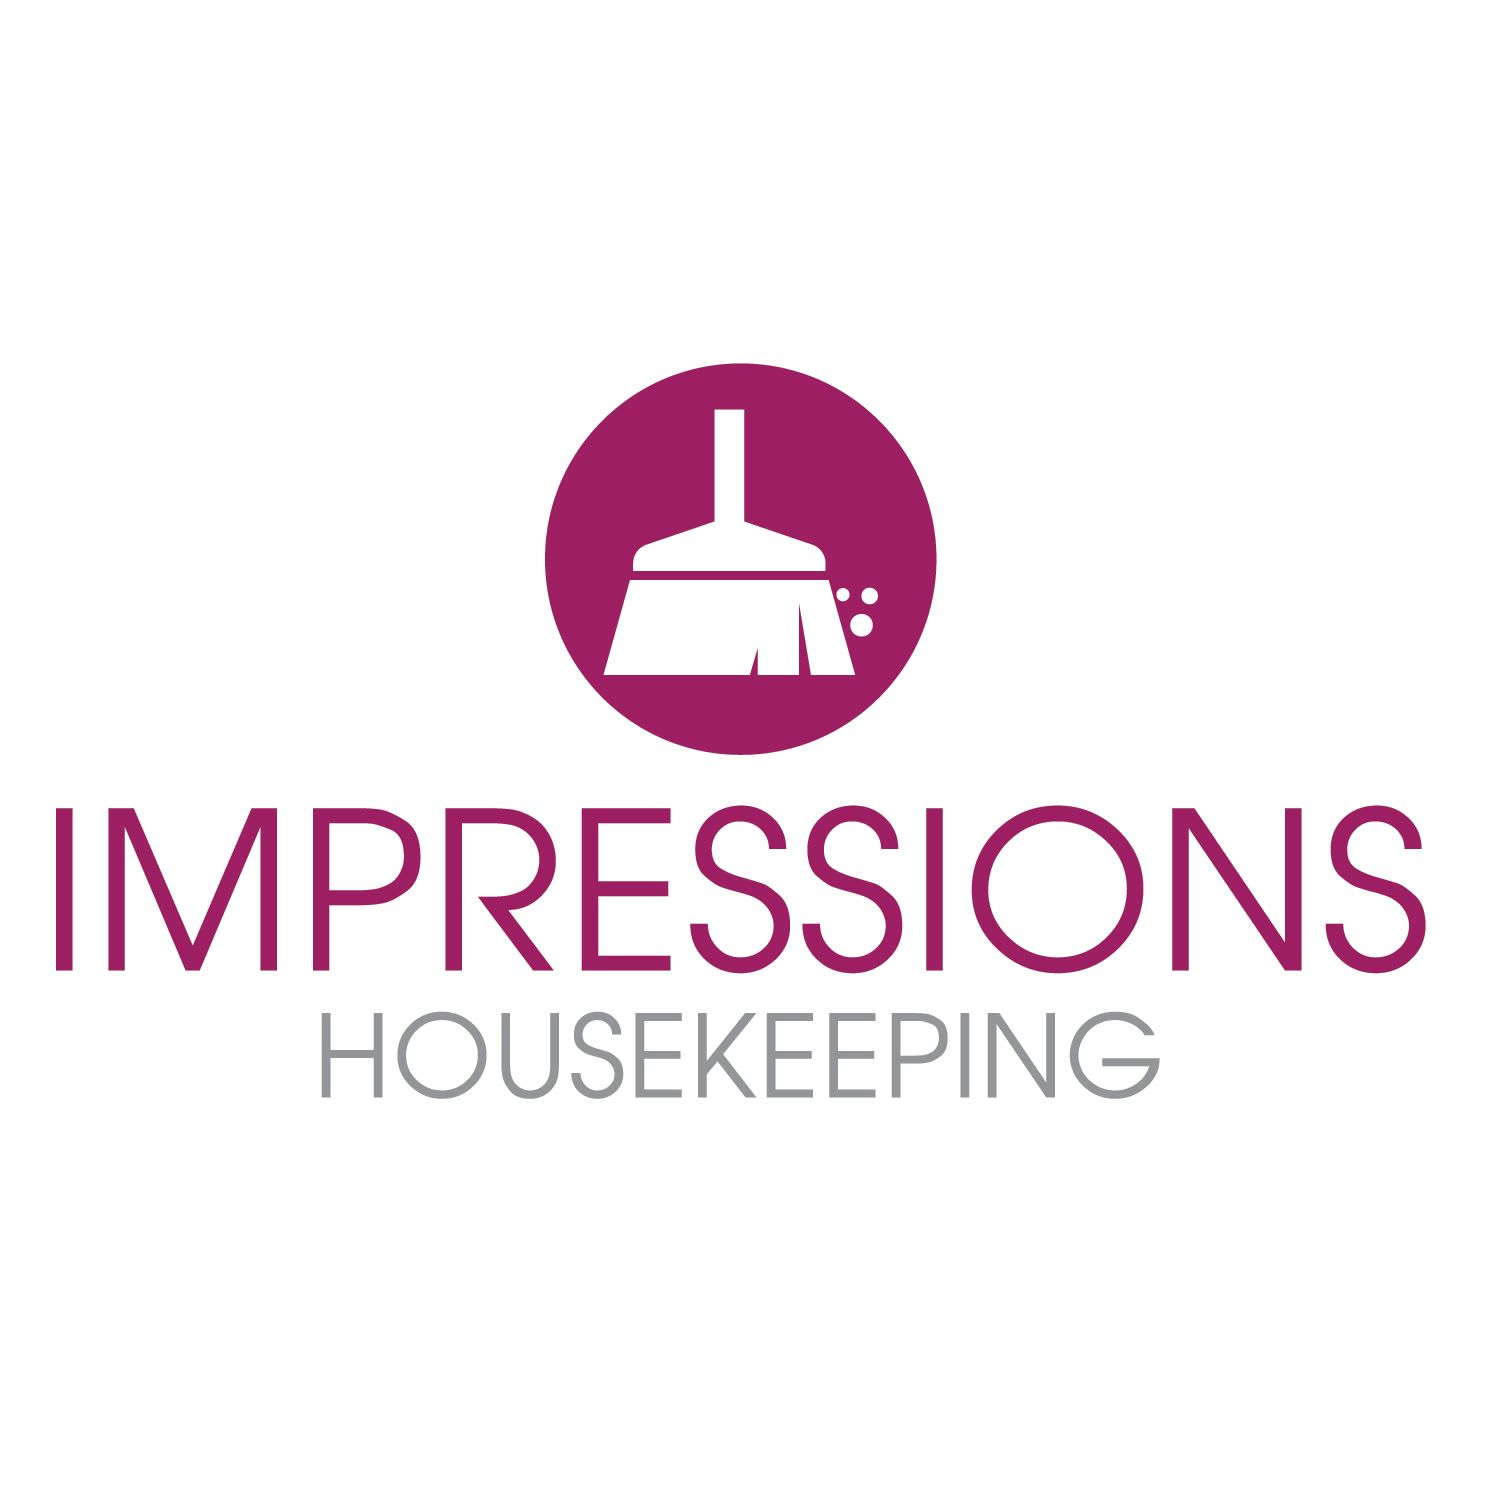 Link to Impressions Housekeeping at Discovery Village At Sandhill in Columbia, South Carolina